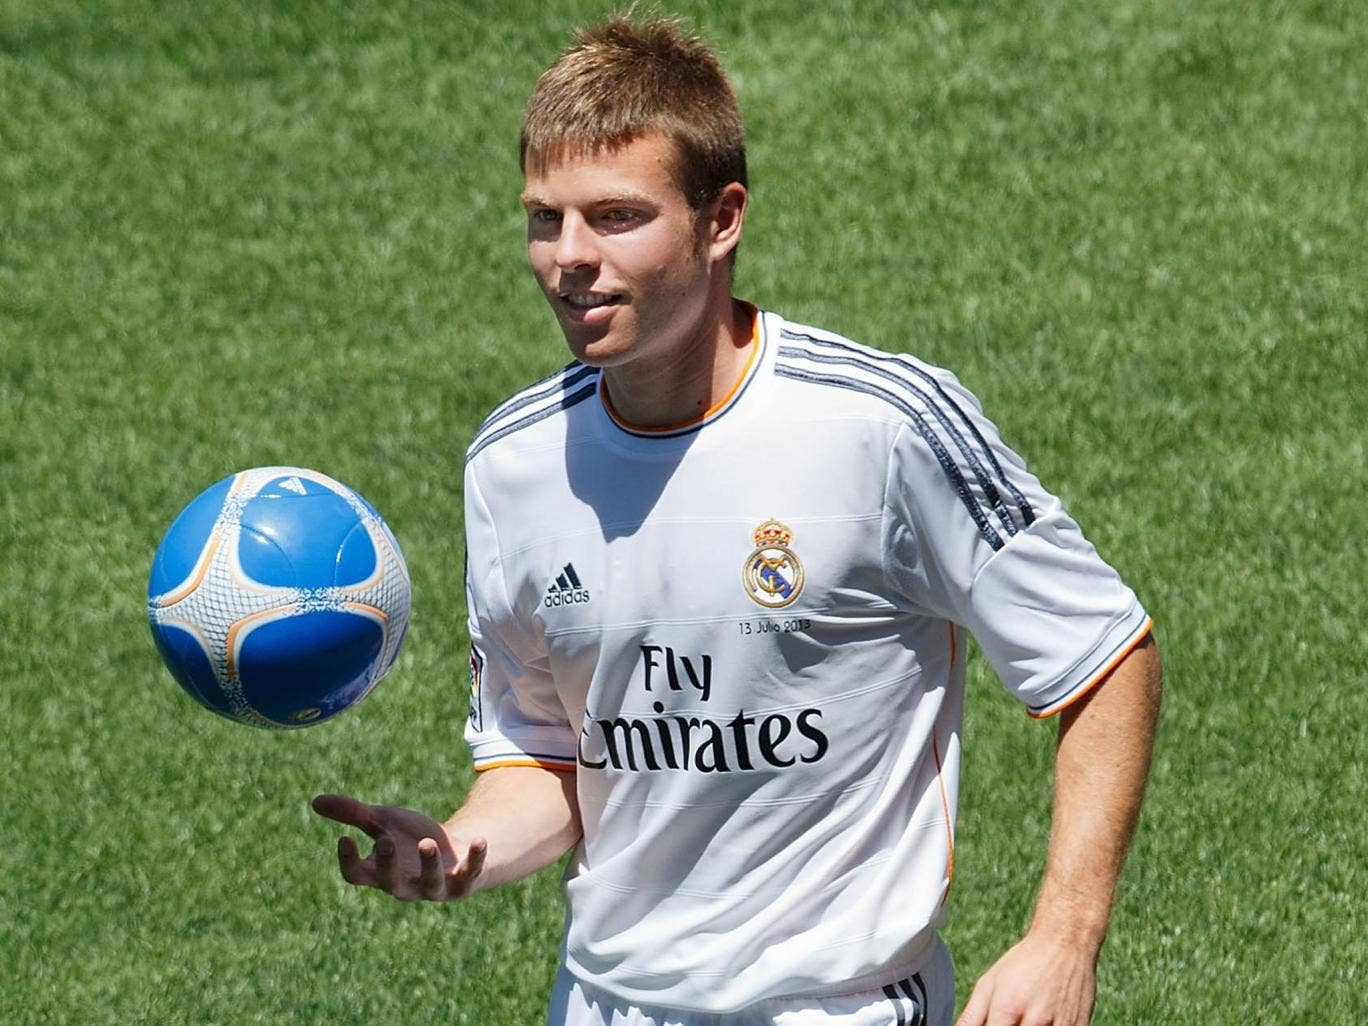 Asier Illarramendi has signed a six-year contract with Real Madrid